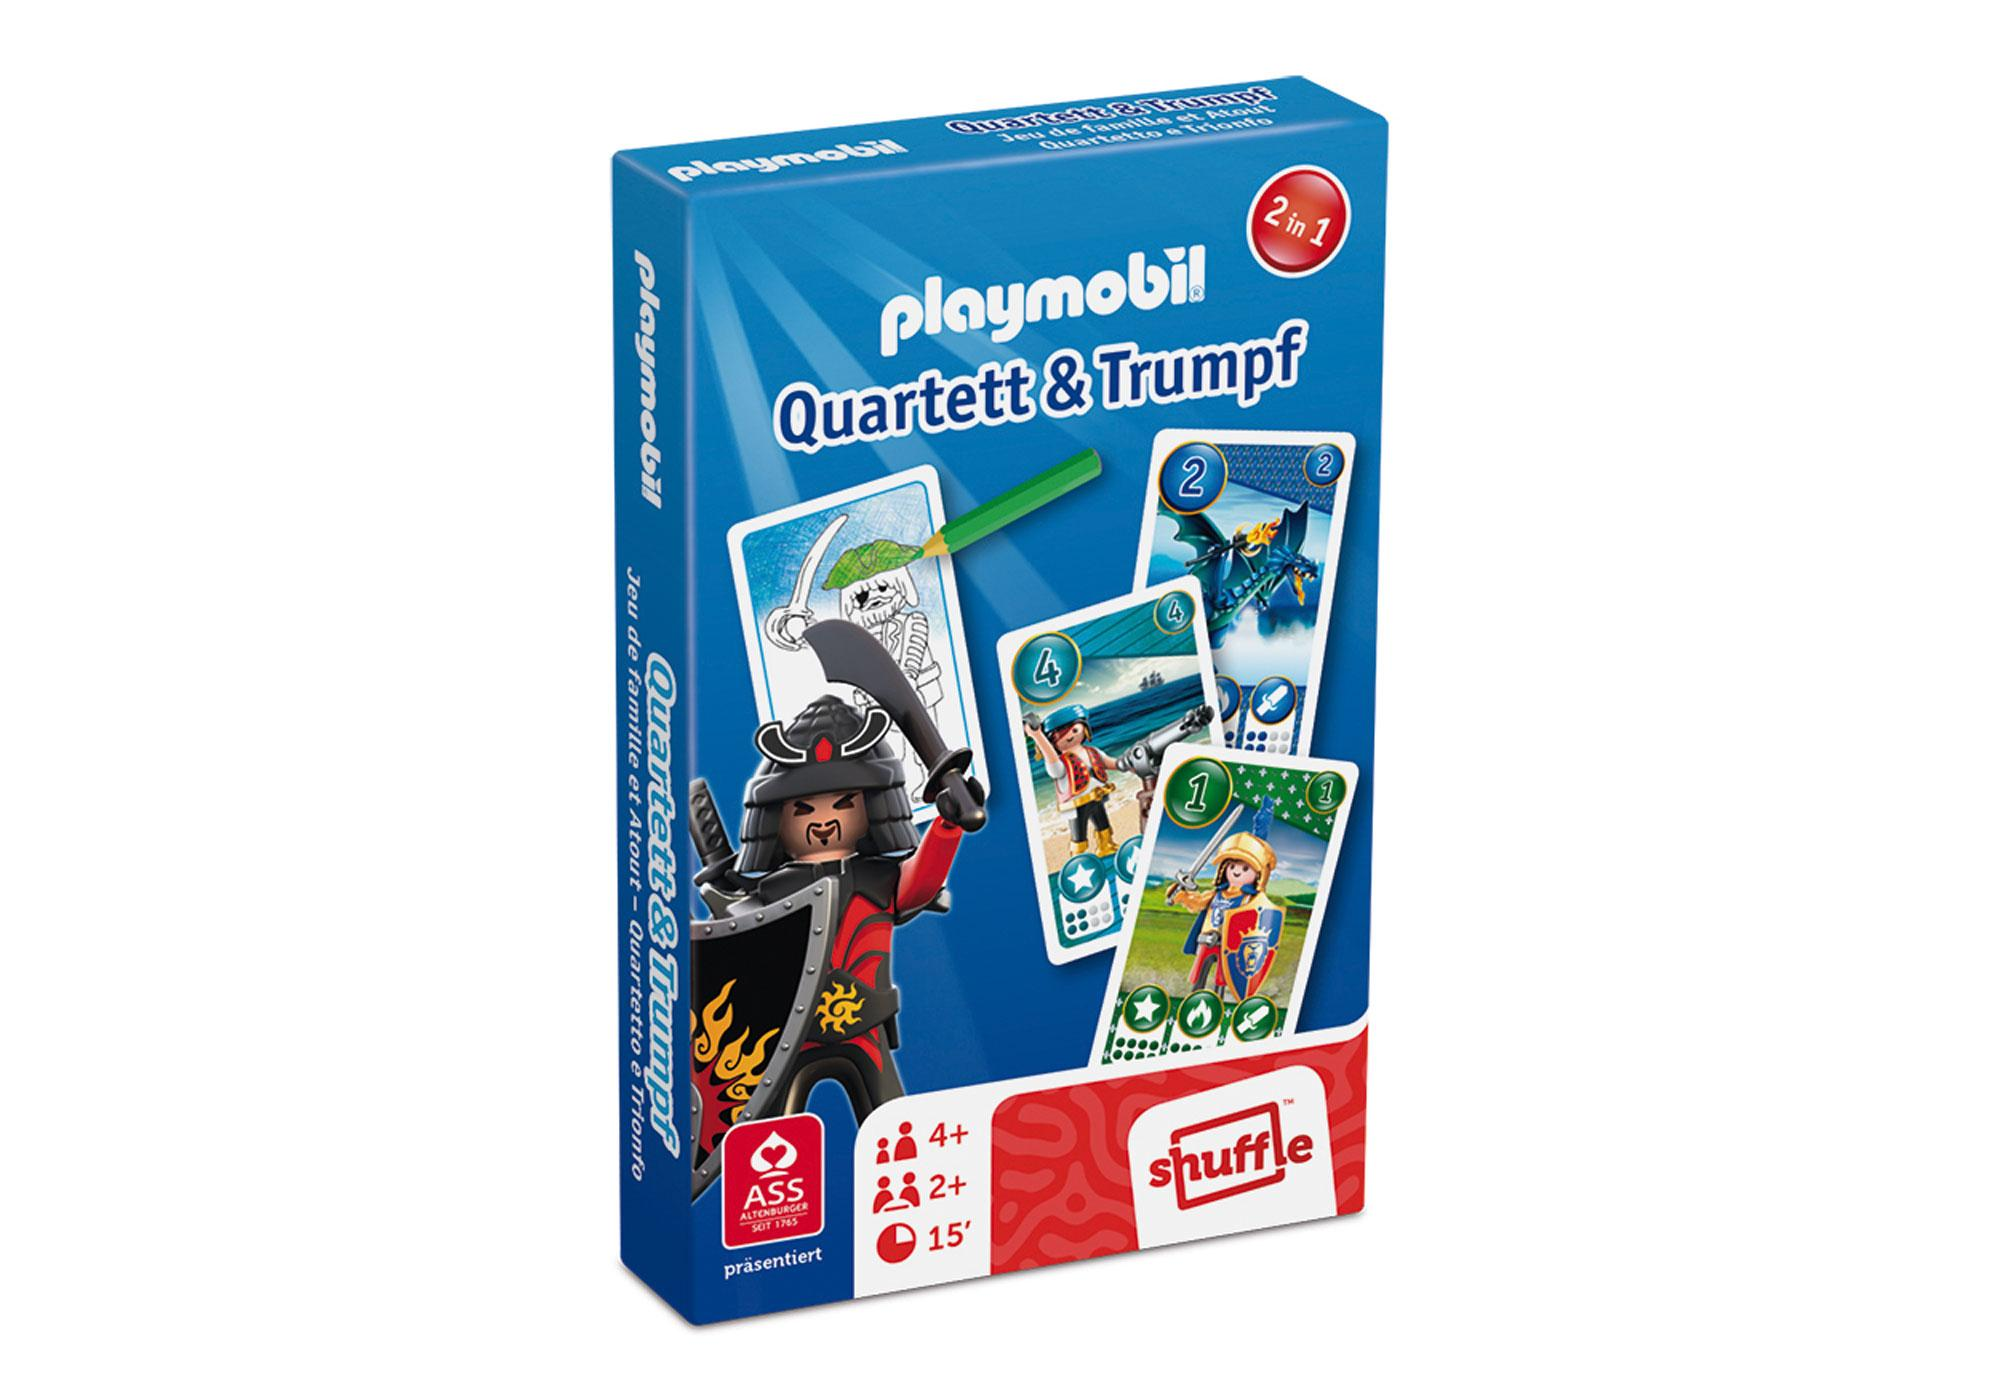 http://media.playmobil.com/i/playmobil/80095_product_detail